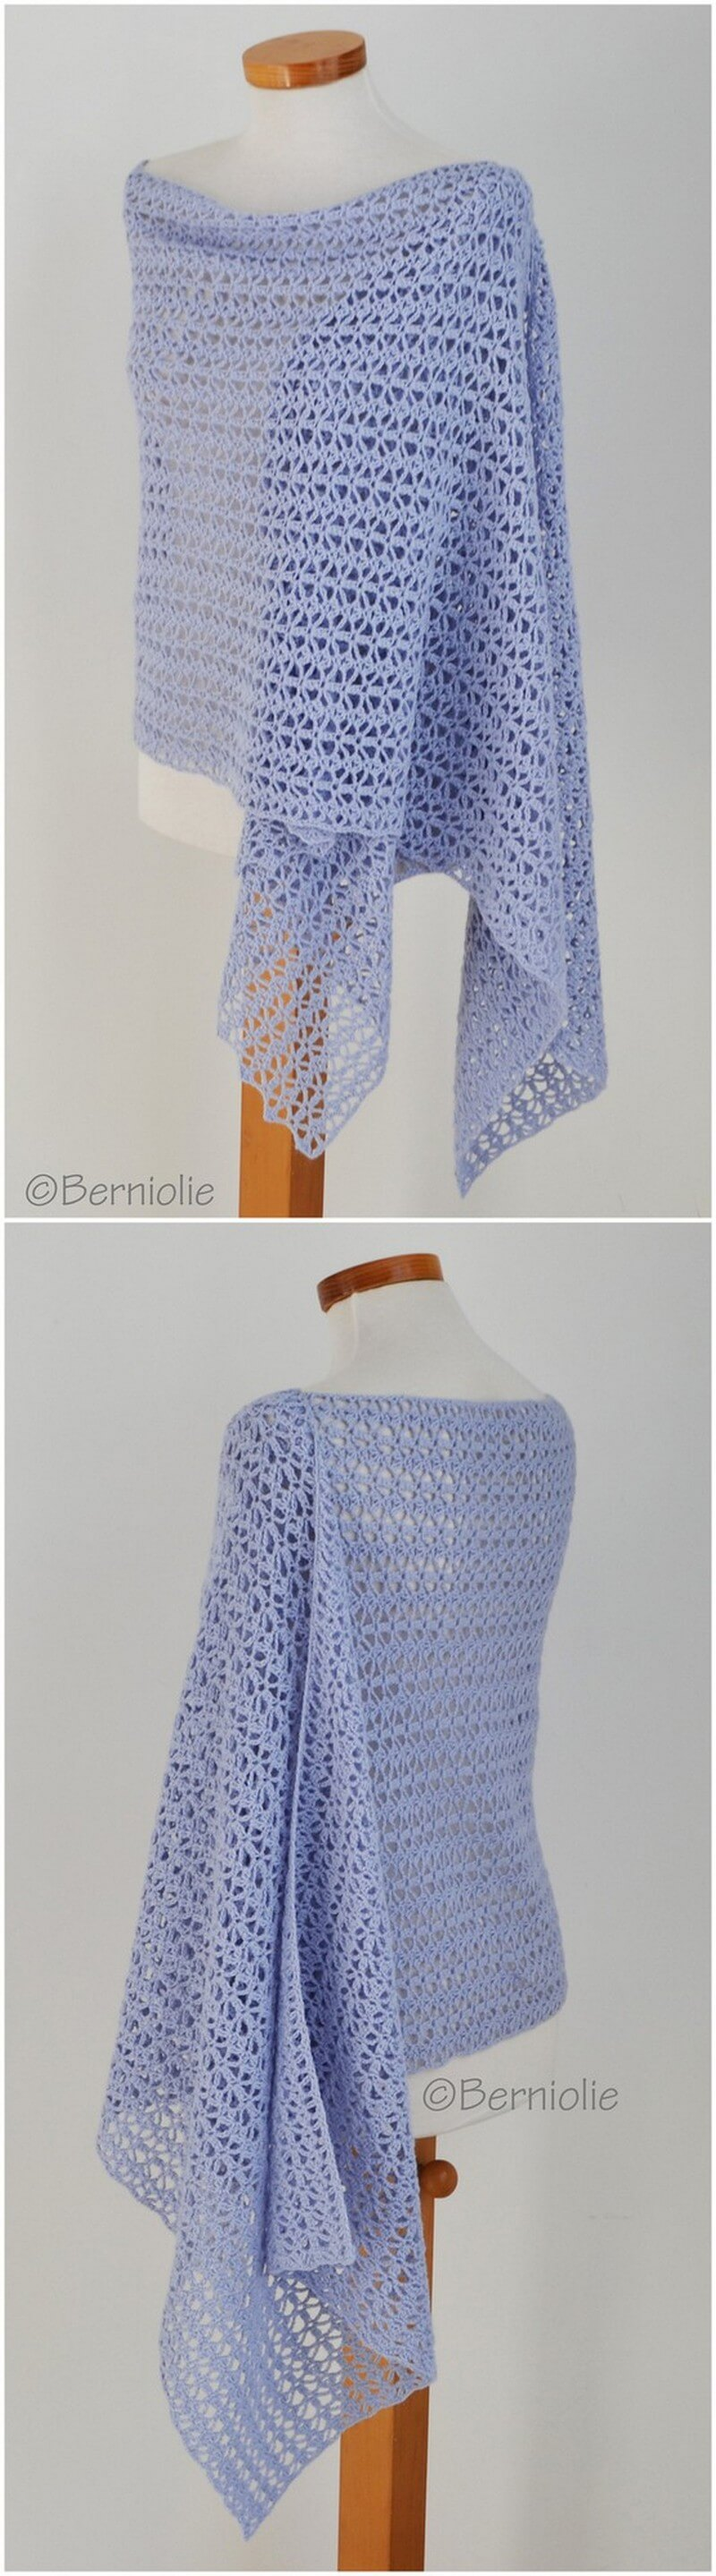 Crochet Shawl Pattern (18)